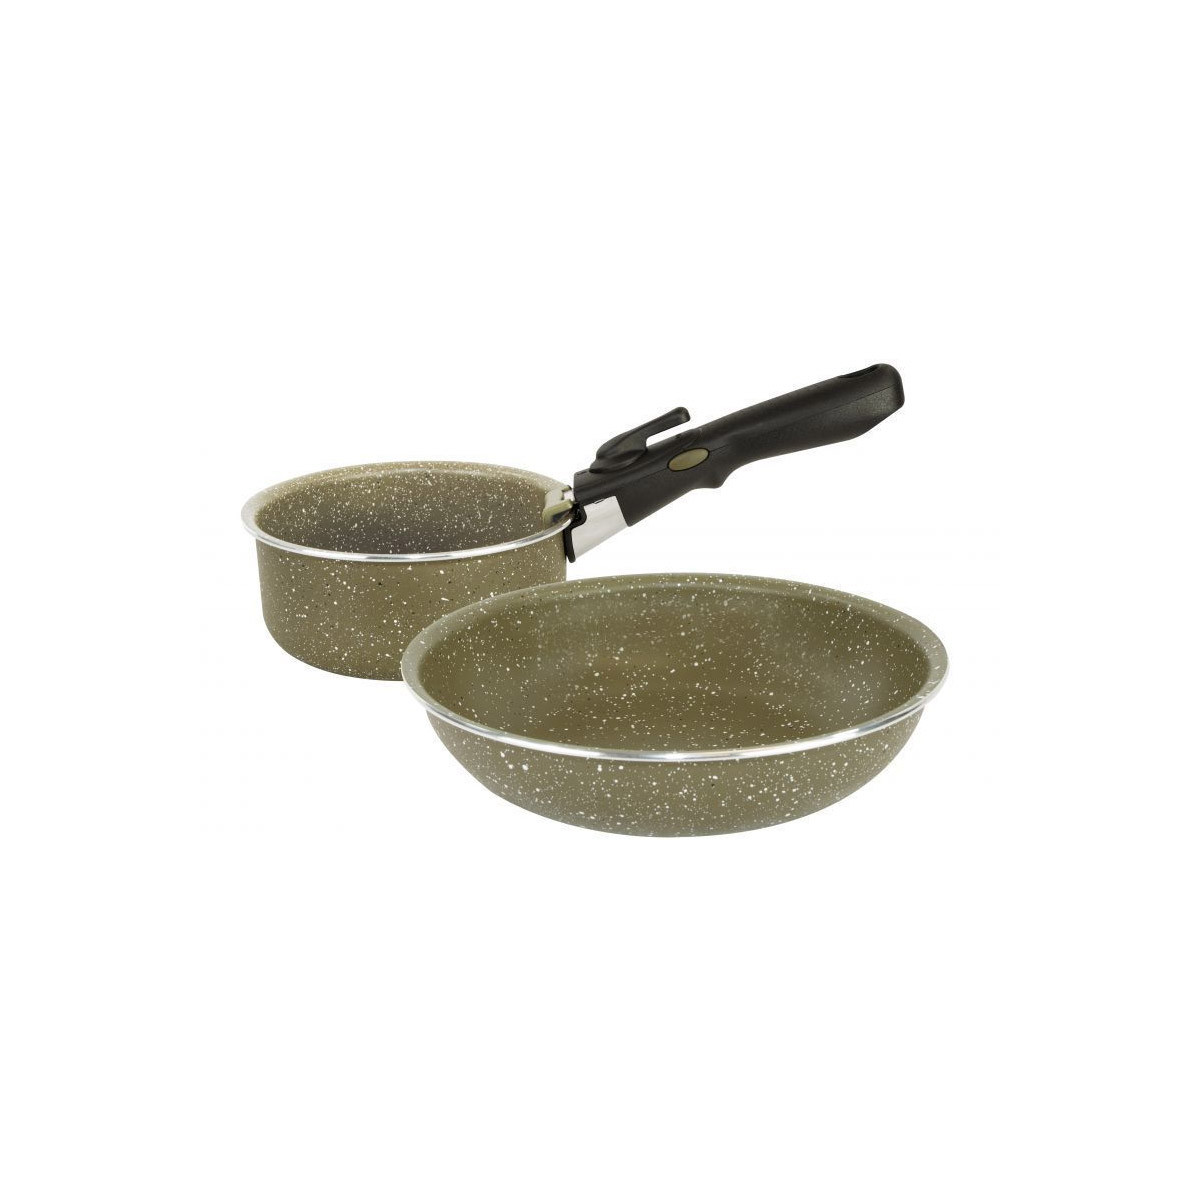 Trakker Armolife Marble Cookset - Compact